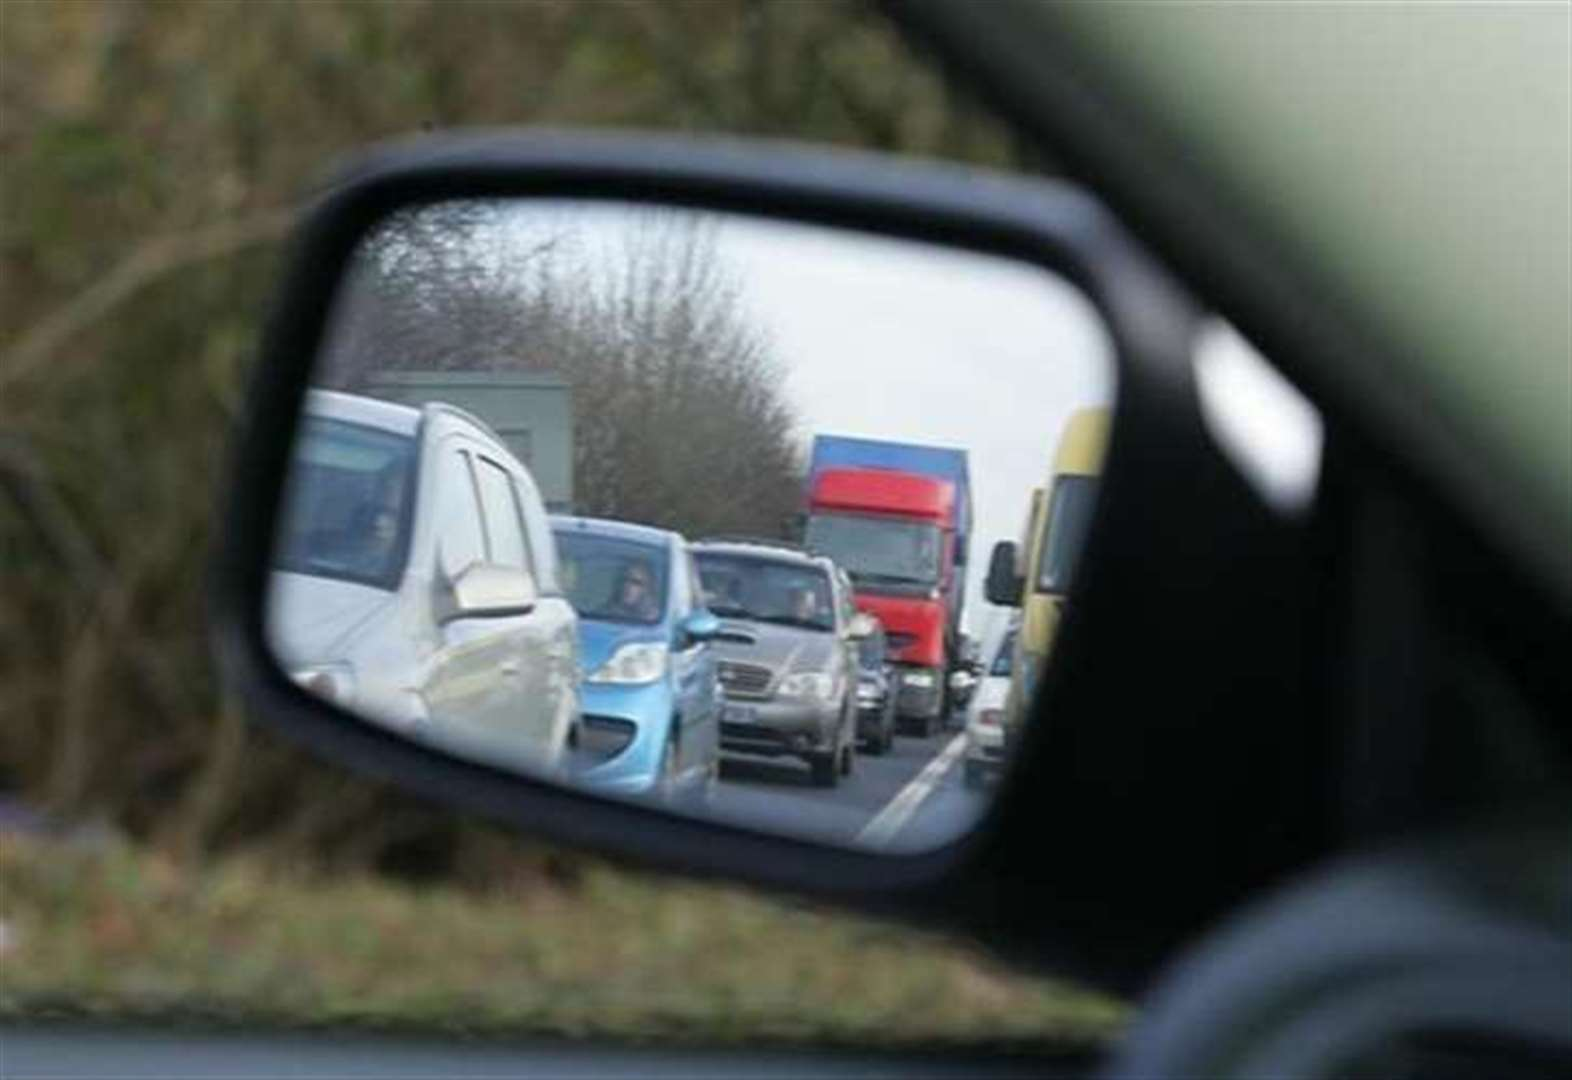 Delays due to break down on M25